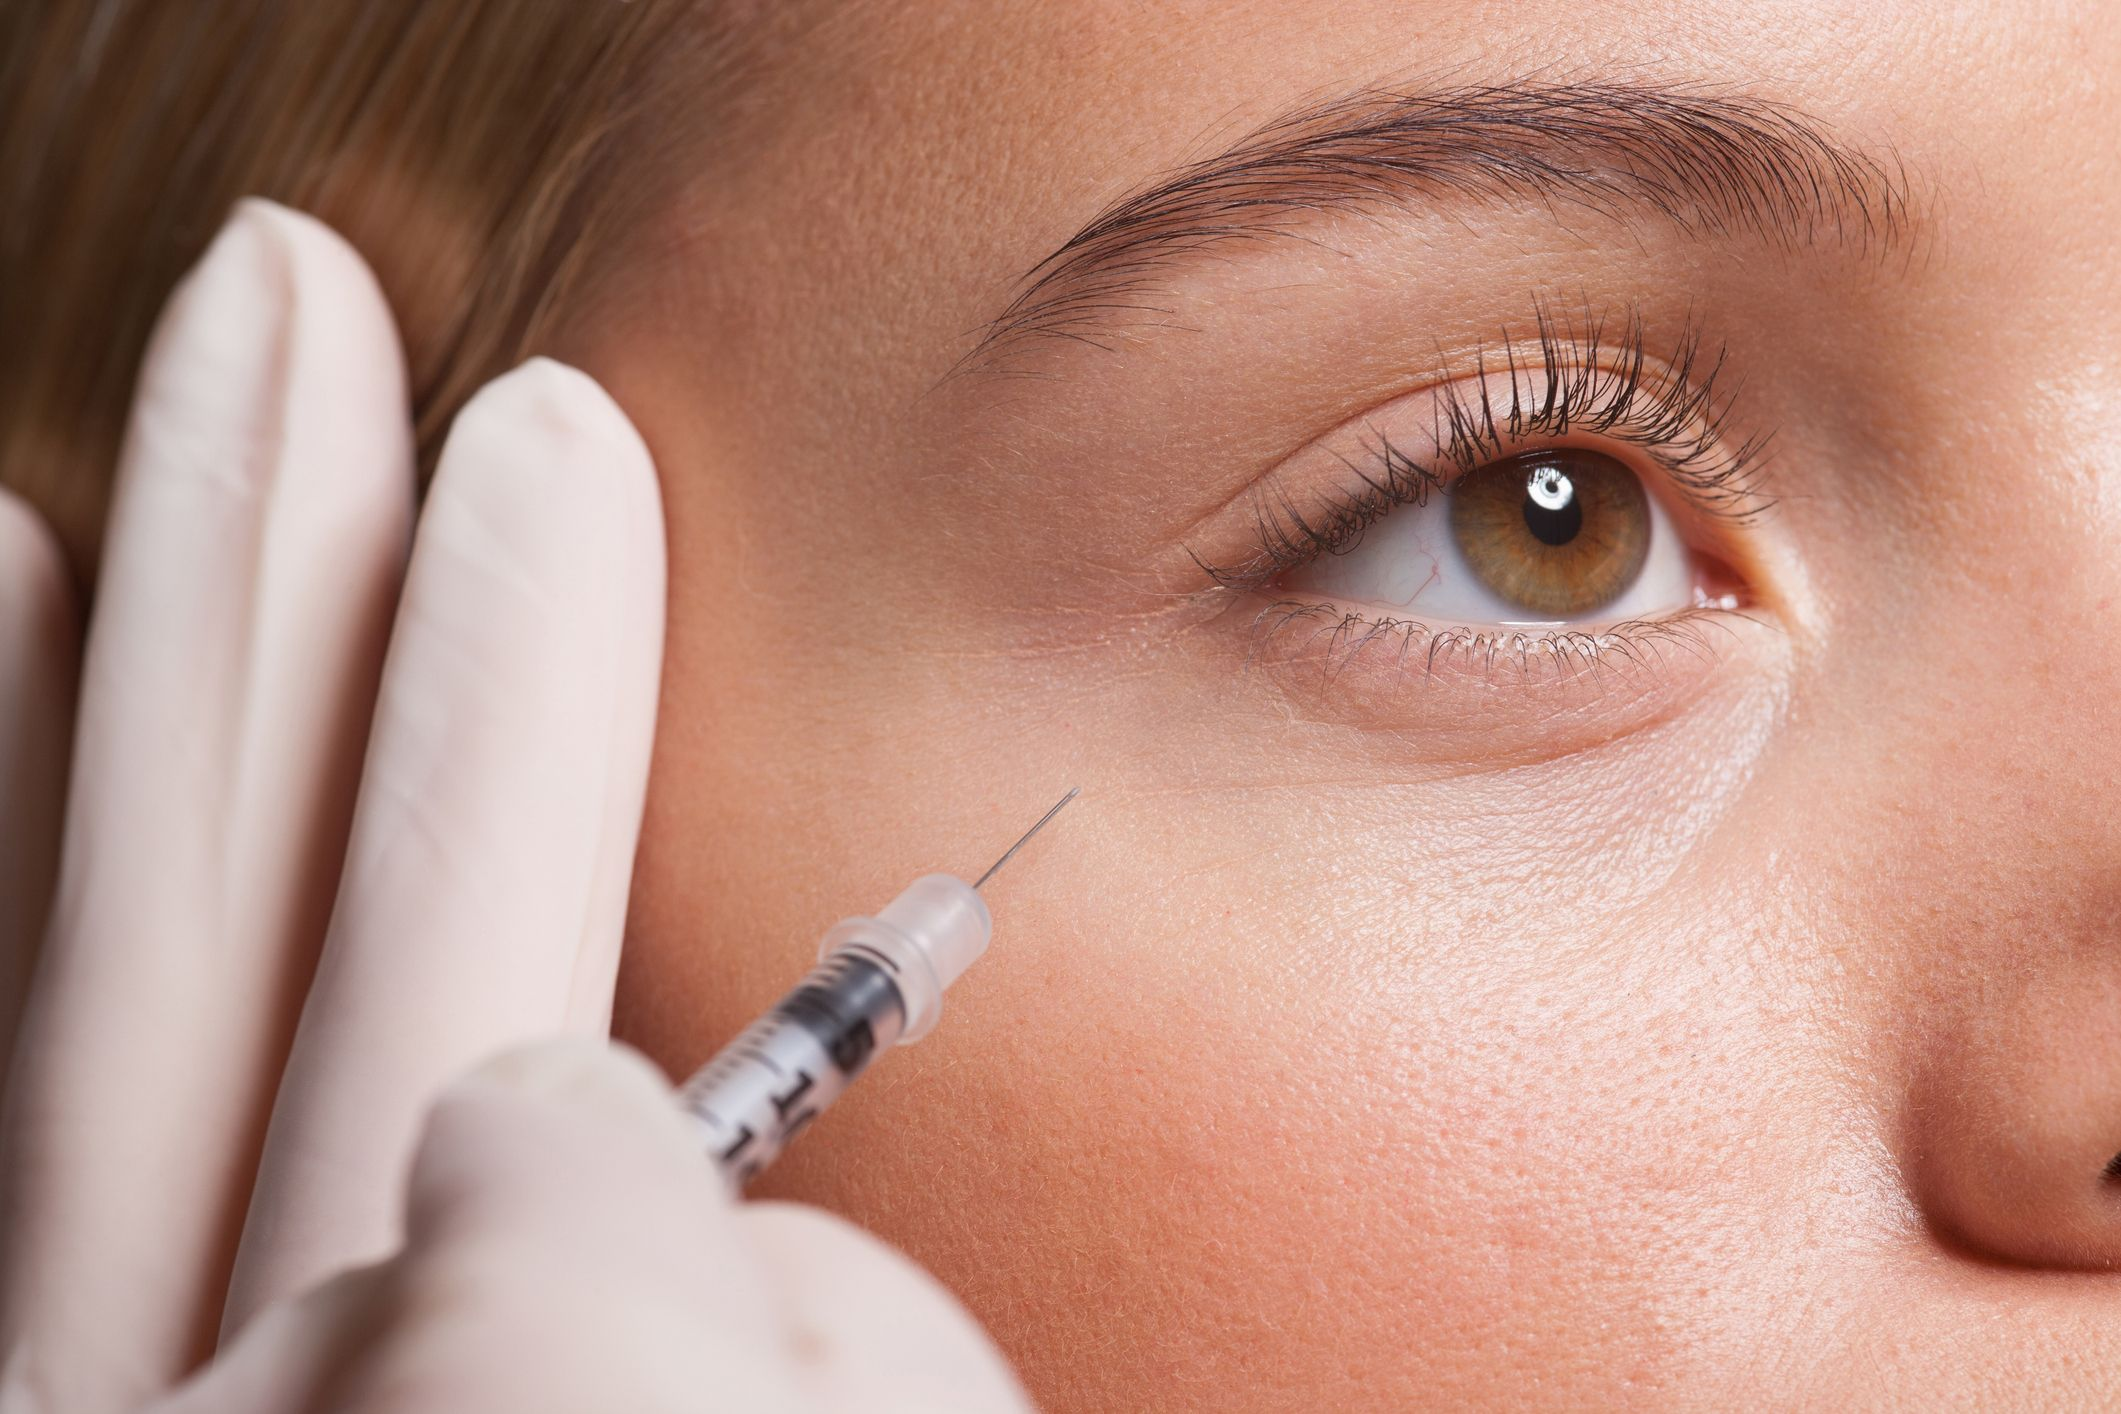 6 Injectables Horror Stories You Need To Read About